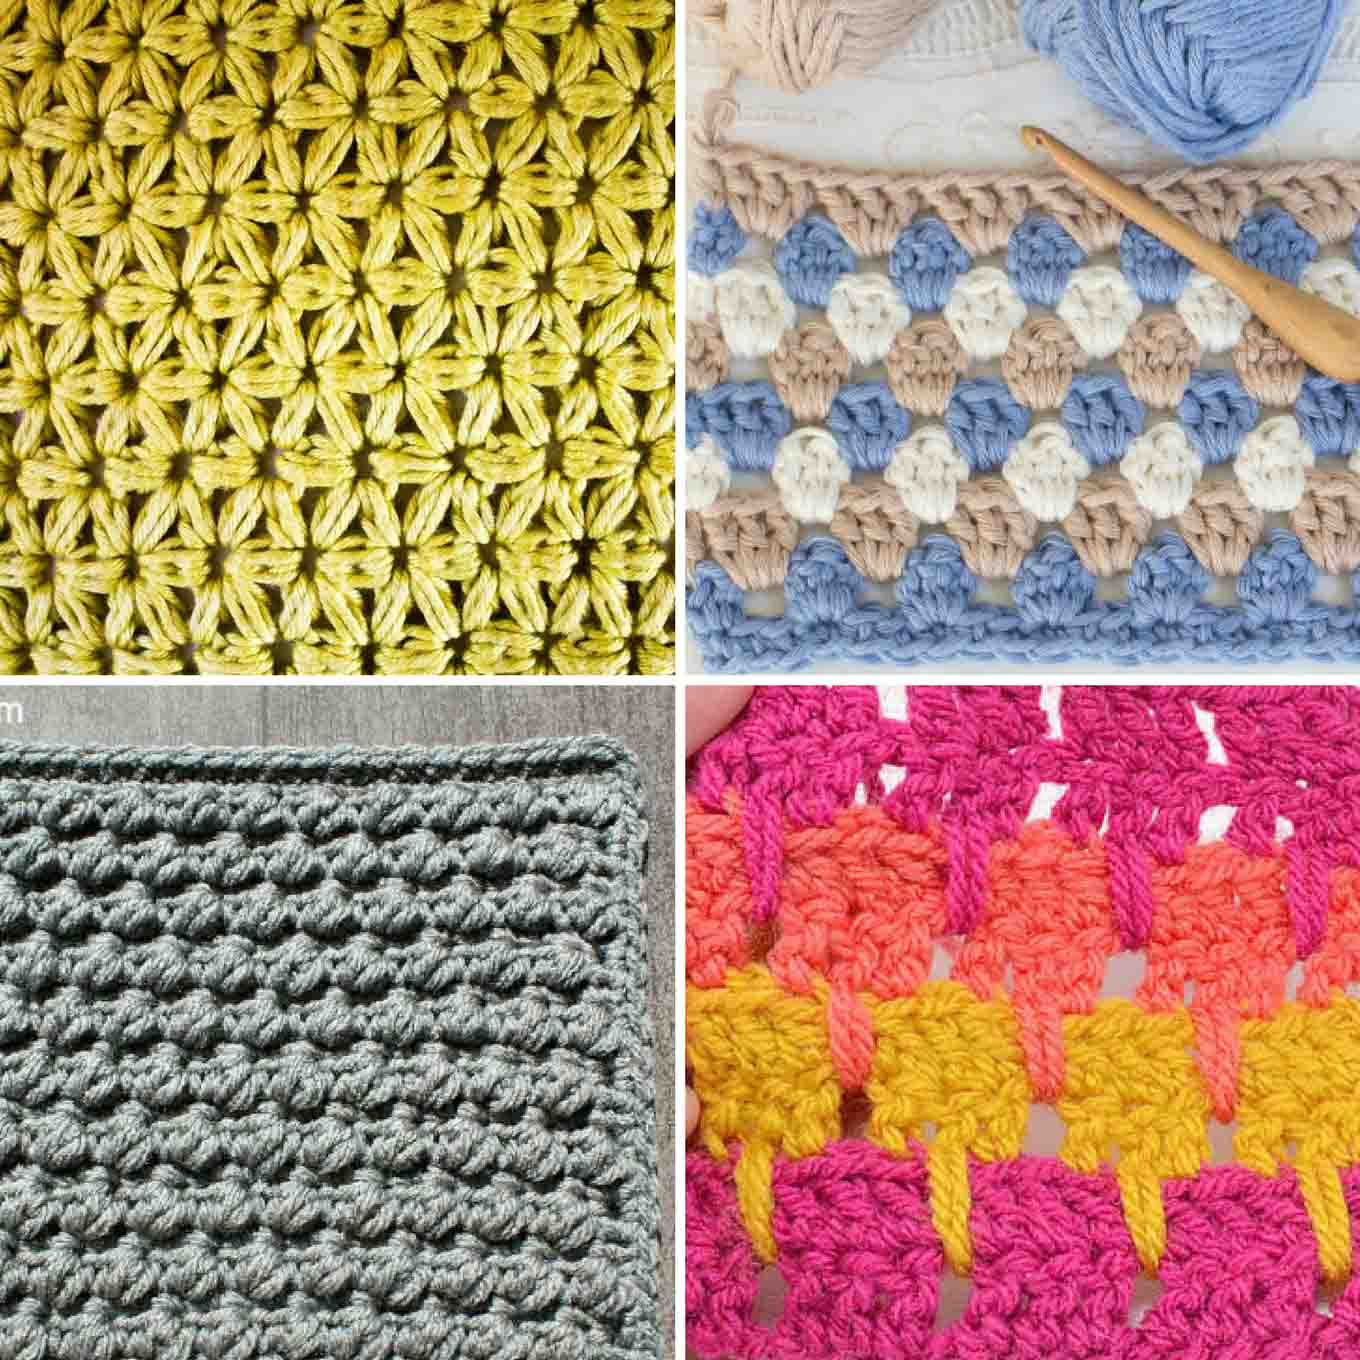 Crochet Stitch Patterns Beautiful 25 Crochet Stitches for Blankets and Afghans Make & Do Crew Of Marvelous 44 Photos Crochet Stitch Patterns